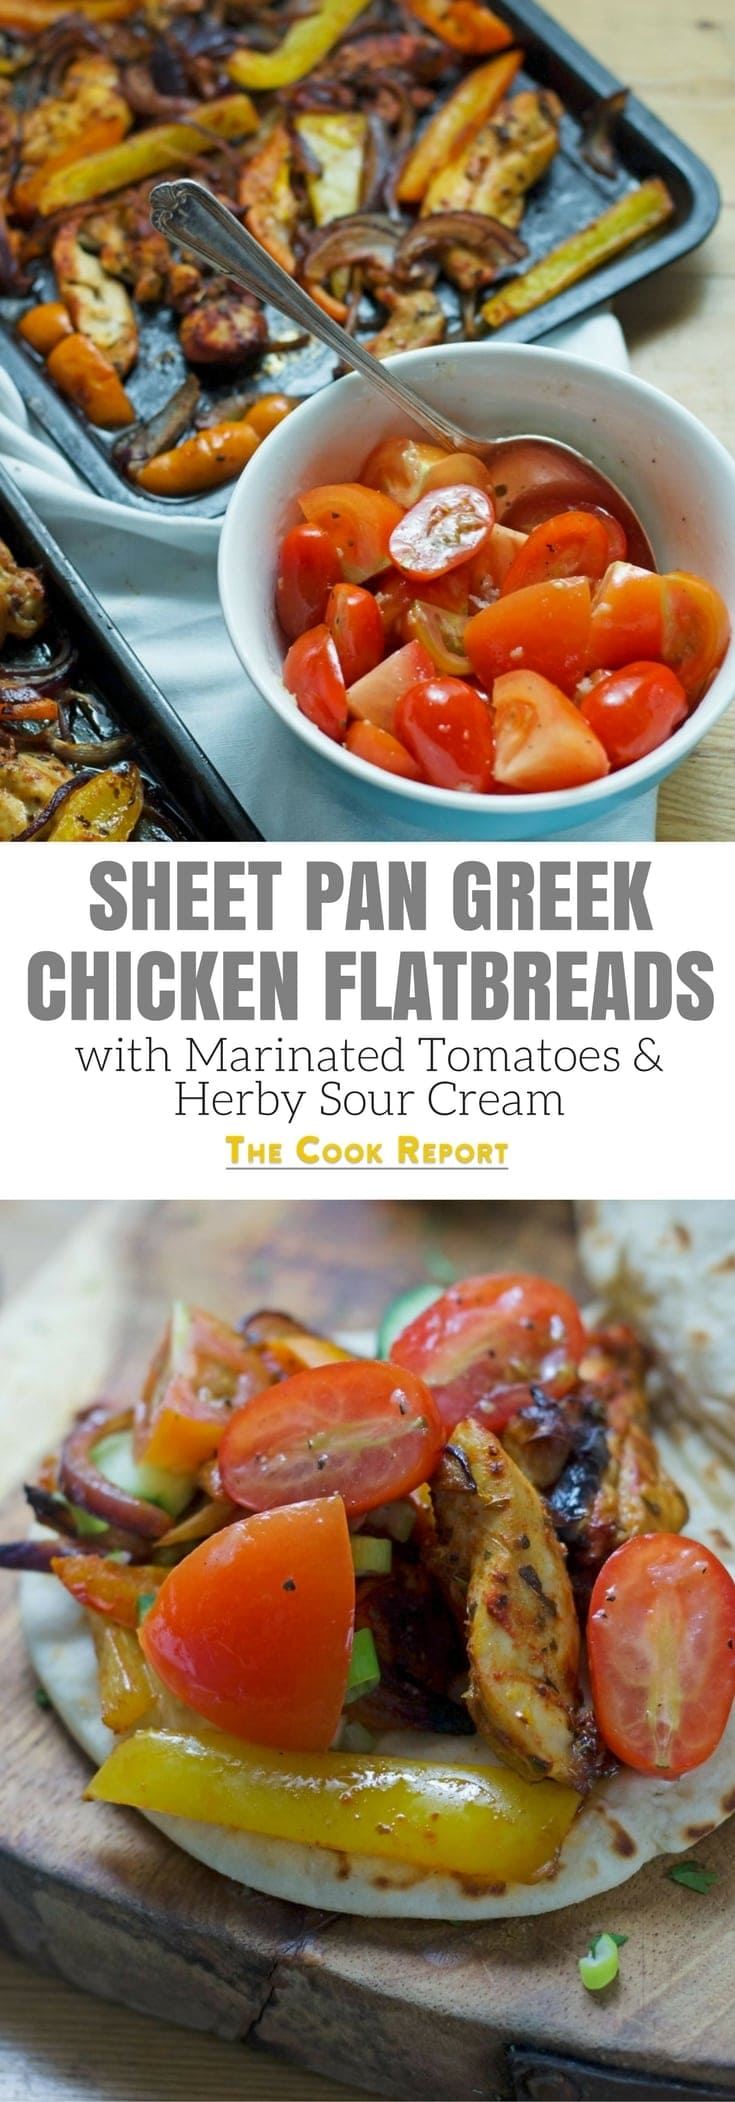 This sheet pan Greek chicken is served in a flatbread with garlicky marinated tomatoes and an incredible herby sour cream sauce!